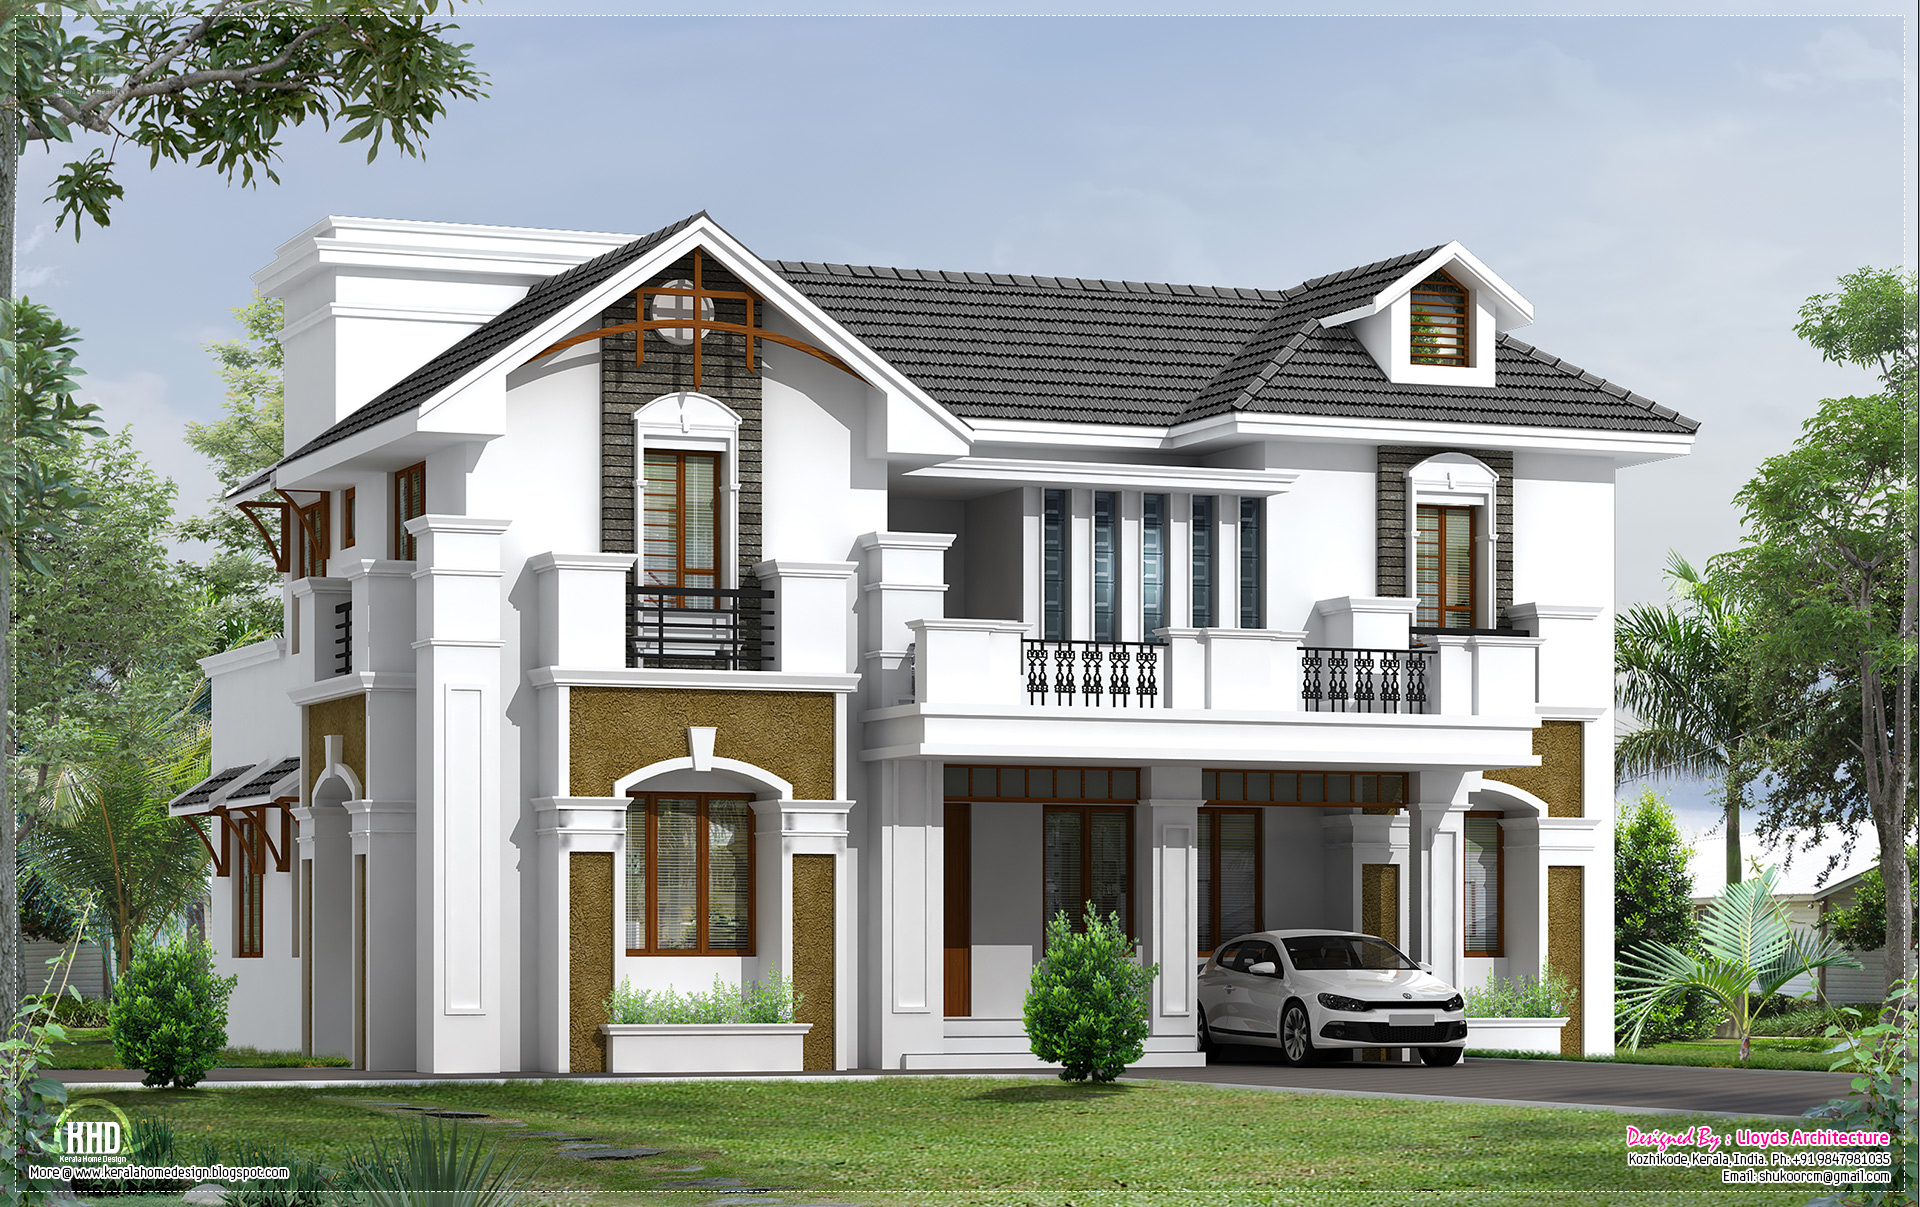 3d View Of 2200 Square Feet Villa Kerala Home Design And Floor Plans